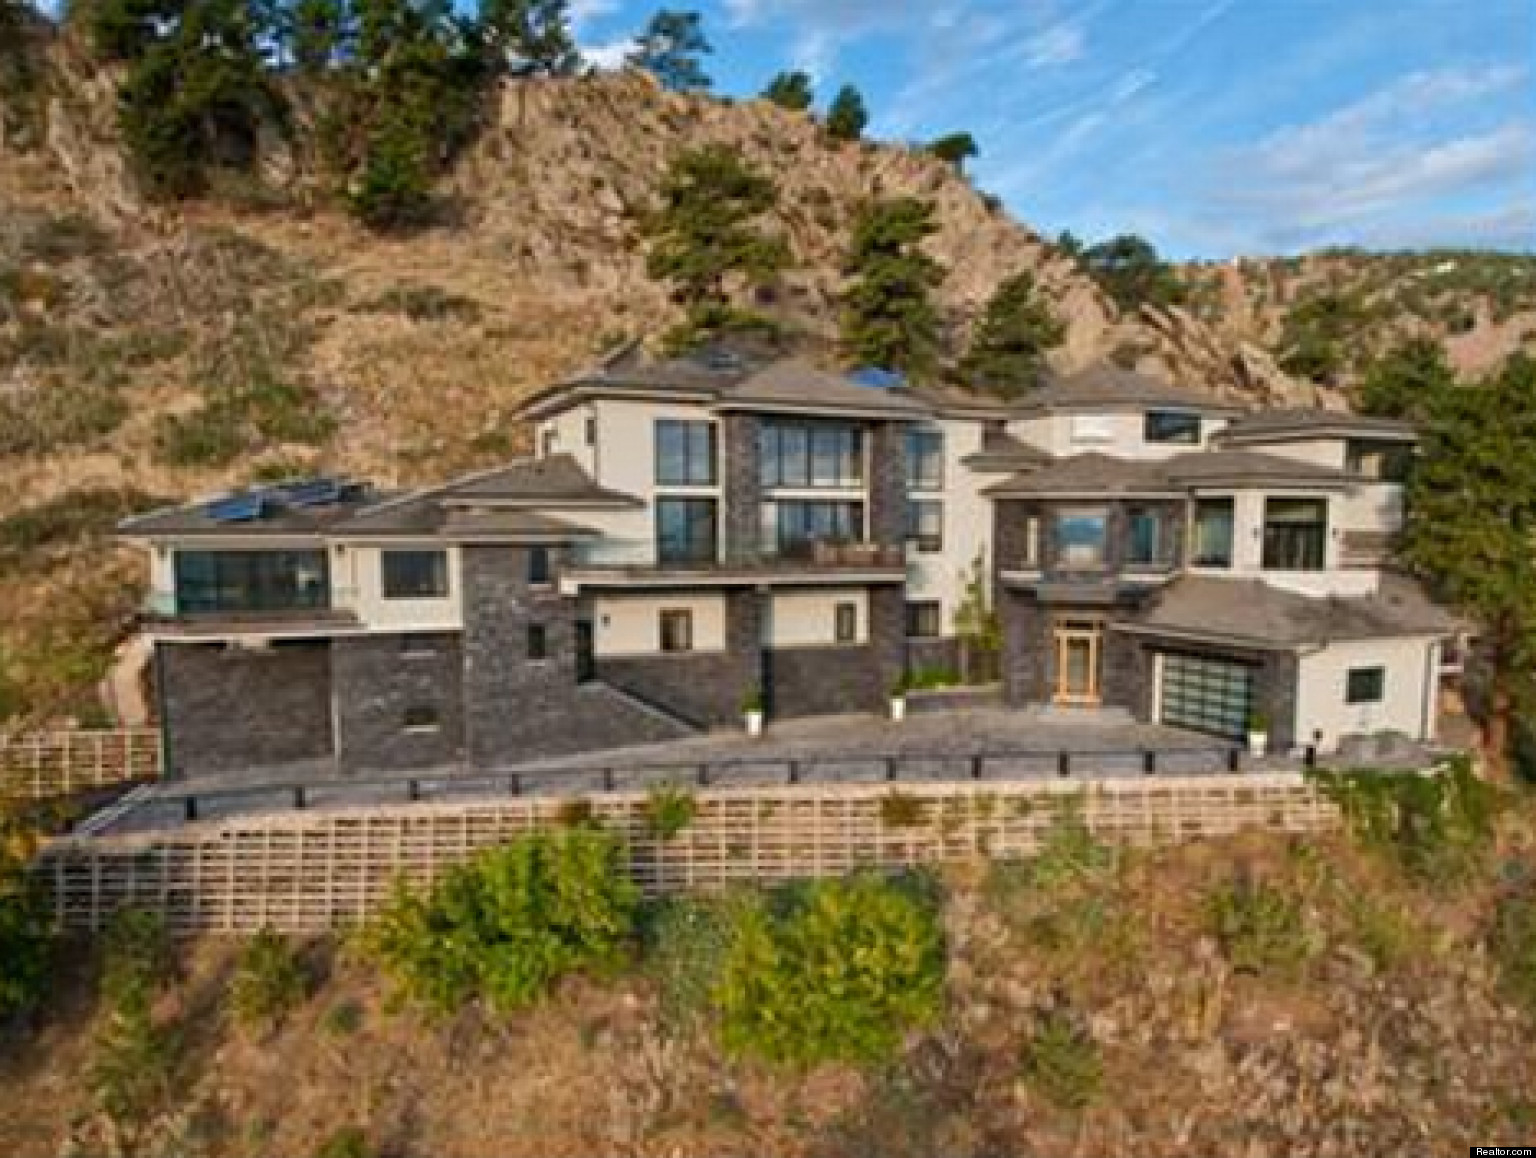 top 10 most expensive homes in boulder, colo. in 2012, according